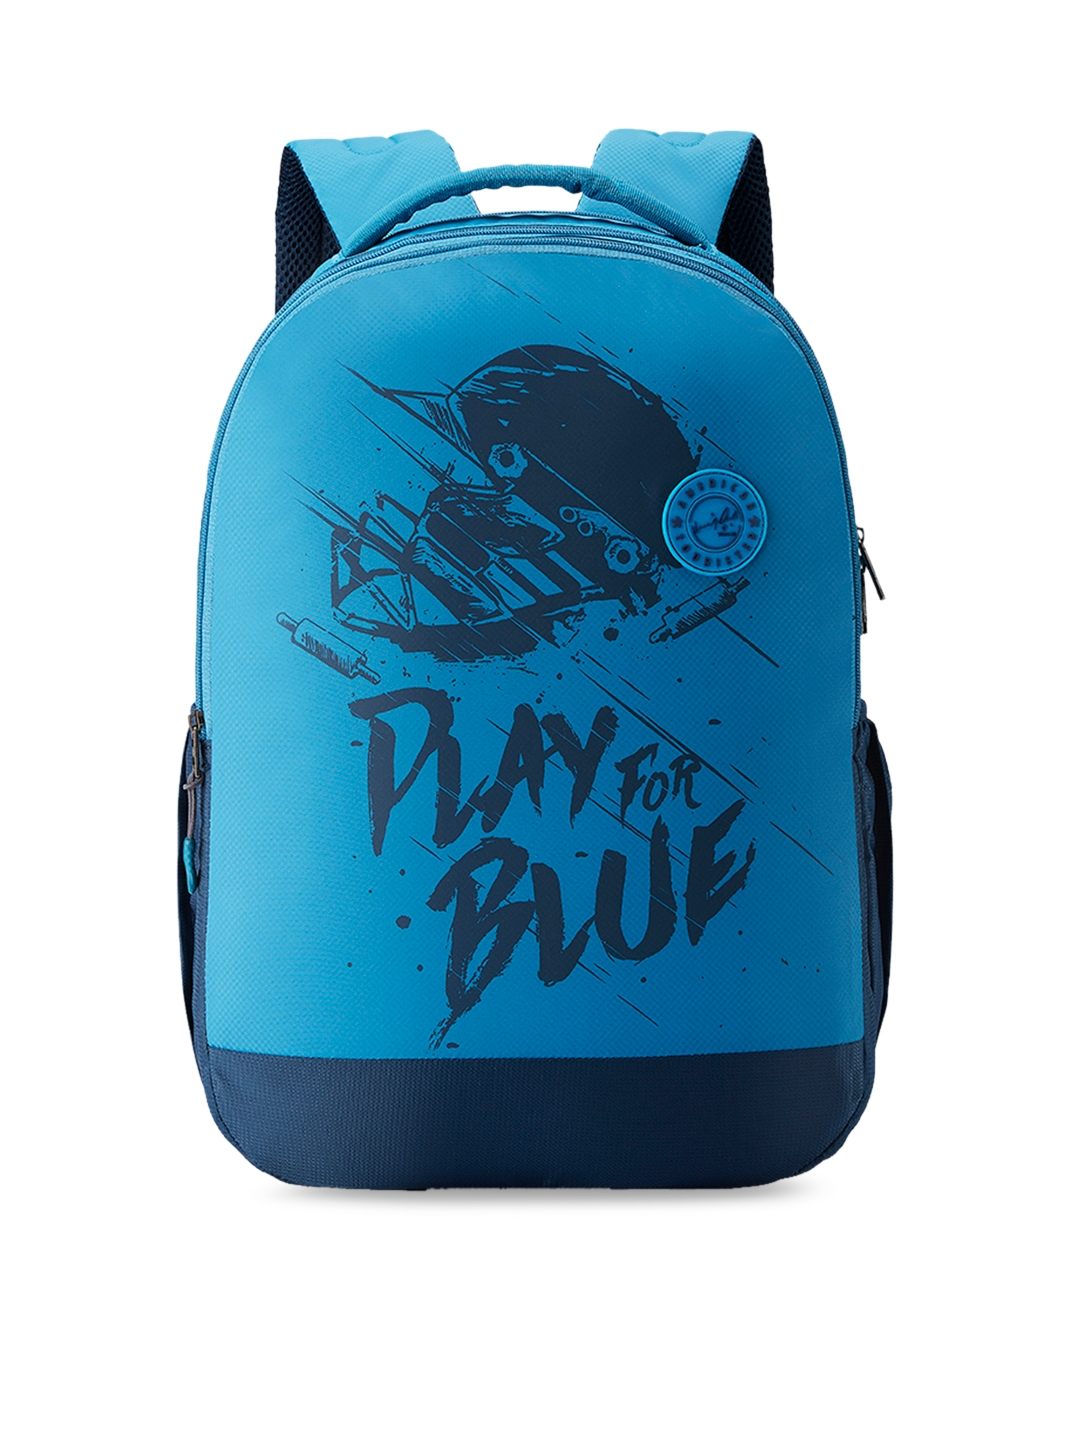 AMERICAN TOURISTER Unisex Teal Blue Graphic Backpack